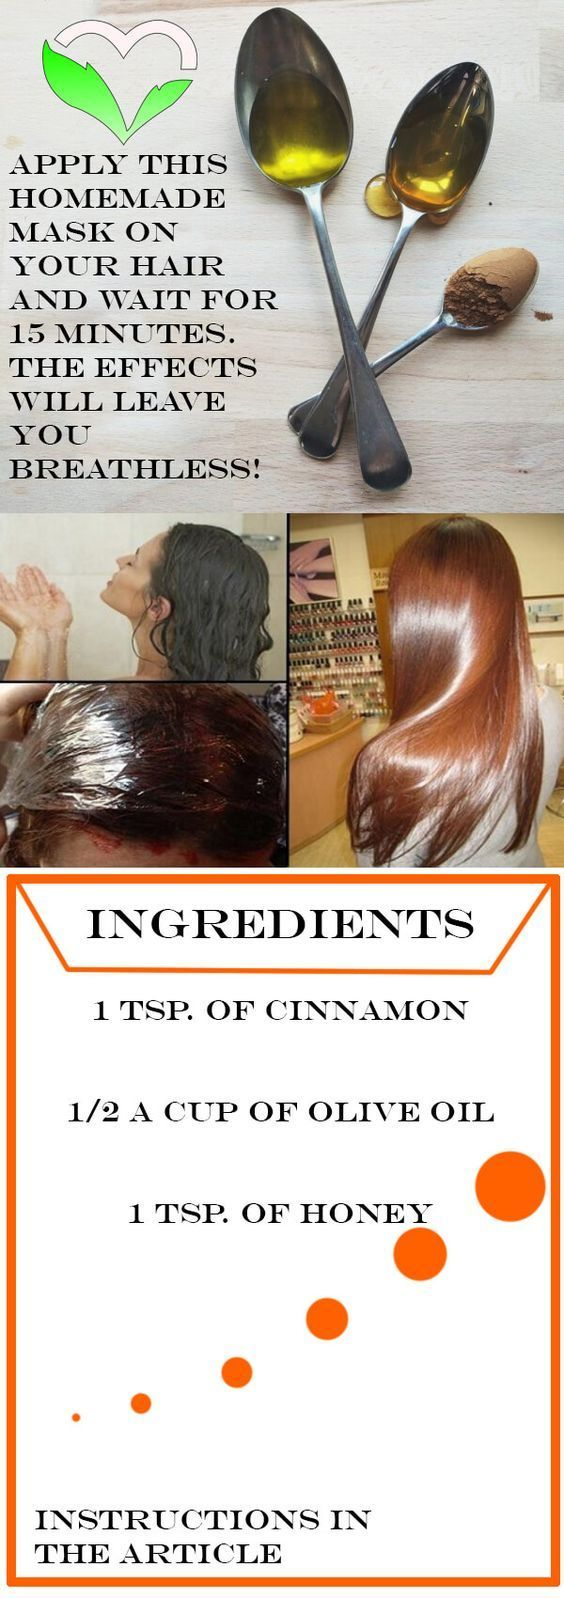 Our hair is one of the most important aesthetics features we have on our body, which is why most women tend to do everything they can to make it look beautiful, strong and shiny. However, hair care can often seem delicate as our hair is being damaged by e